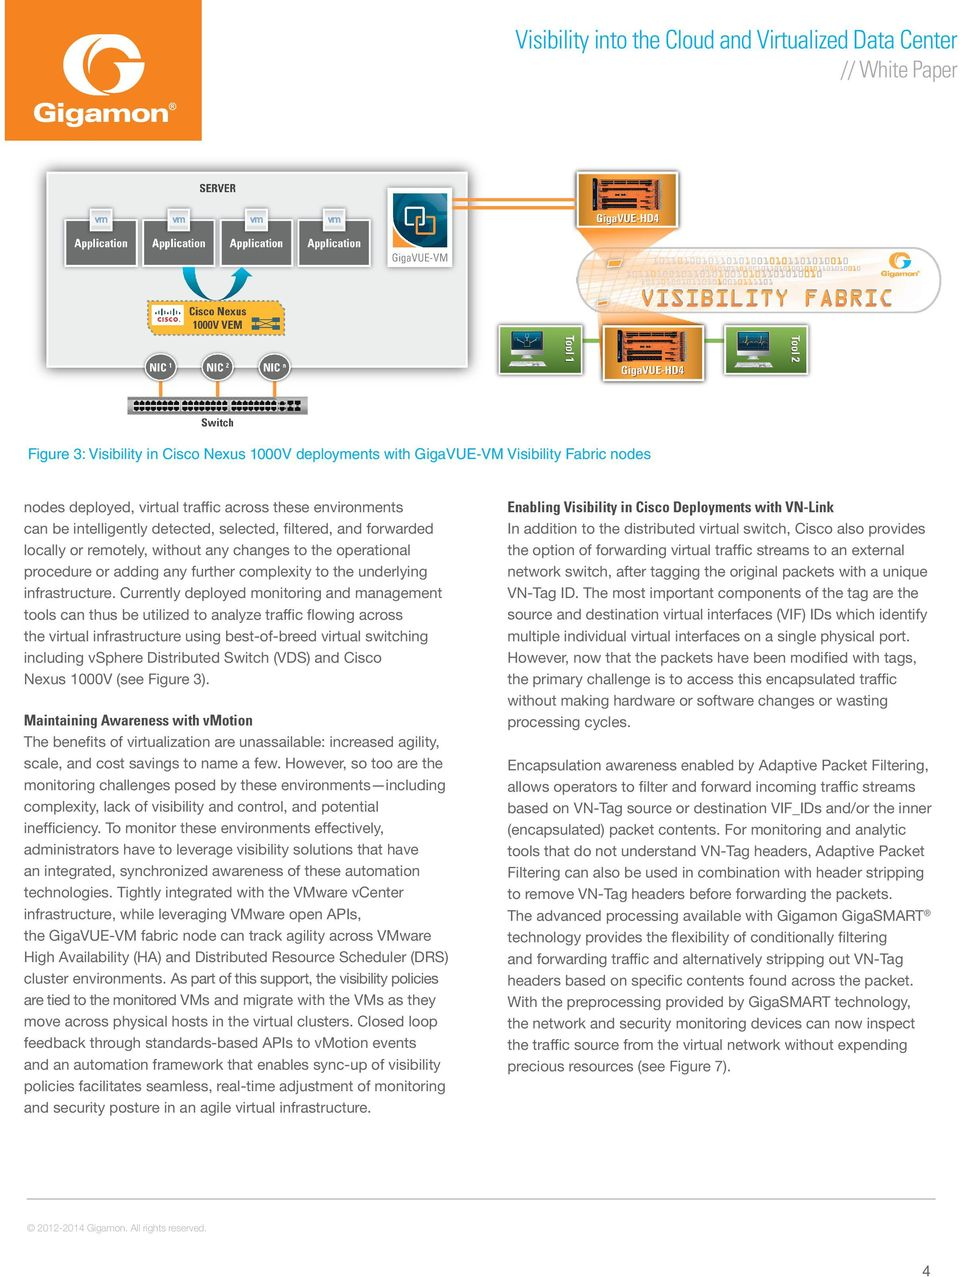 Currently deployed monitoring and management tools can thus be utilized to analyze traffic flowing across the virtual infrastructure using best-of-breed virtual switching including vsphere